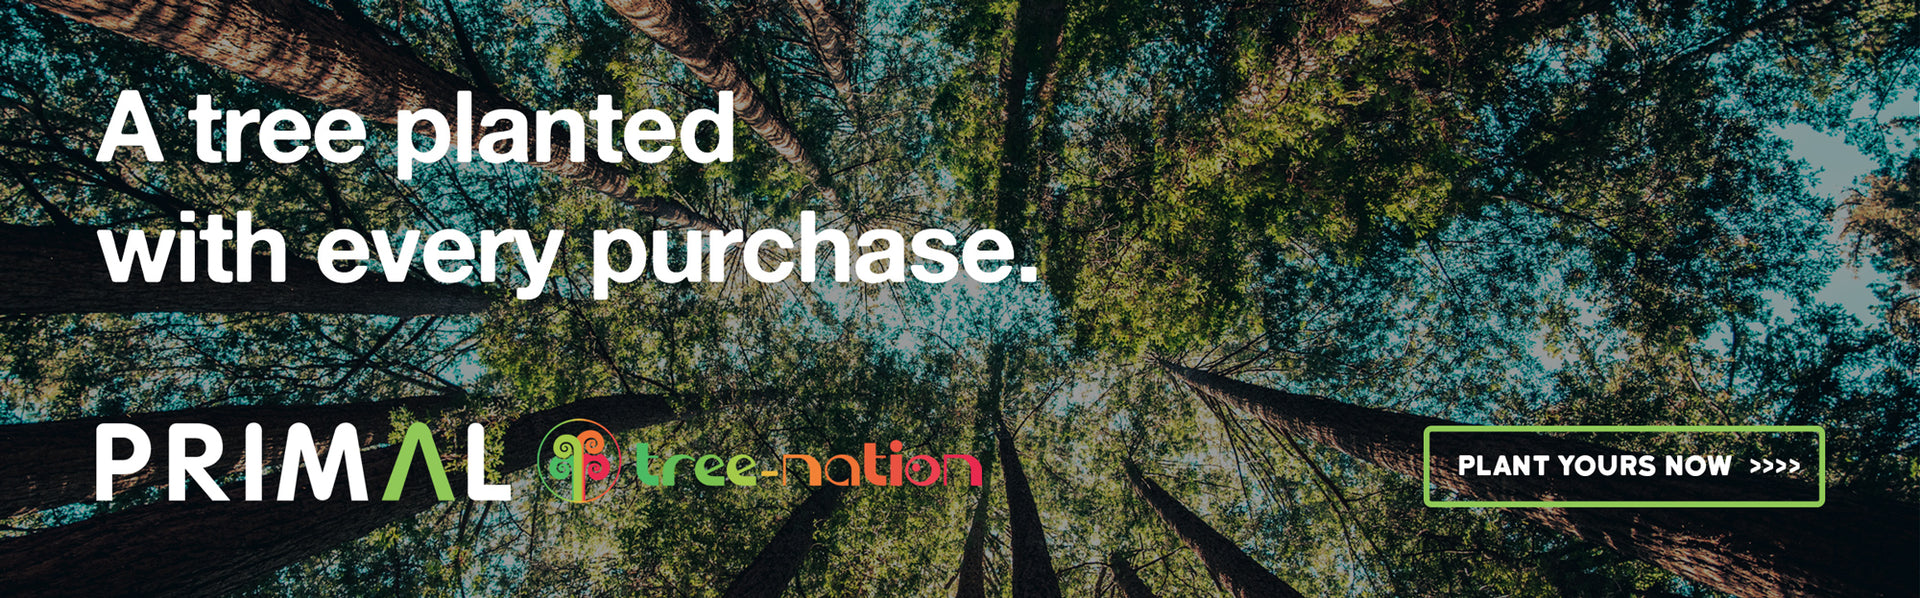 A tree planted with every purchase Treenation Primal